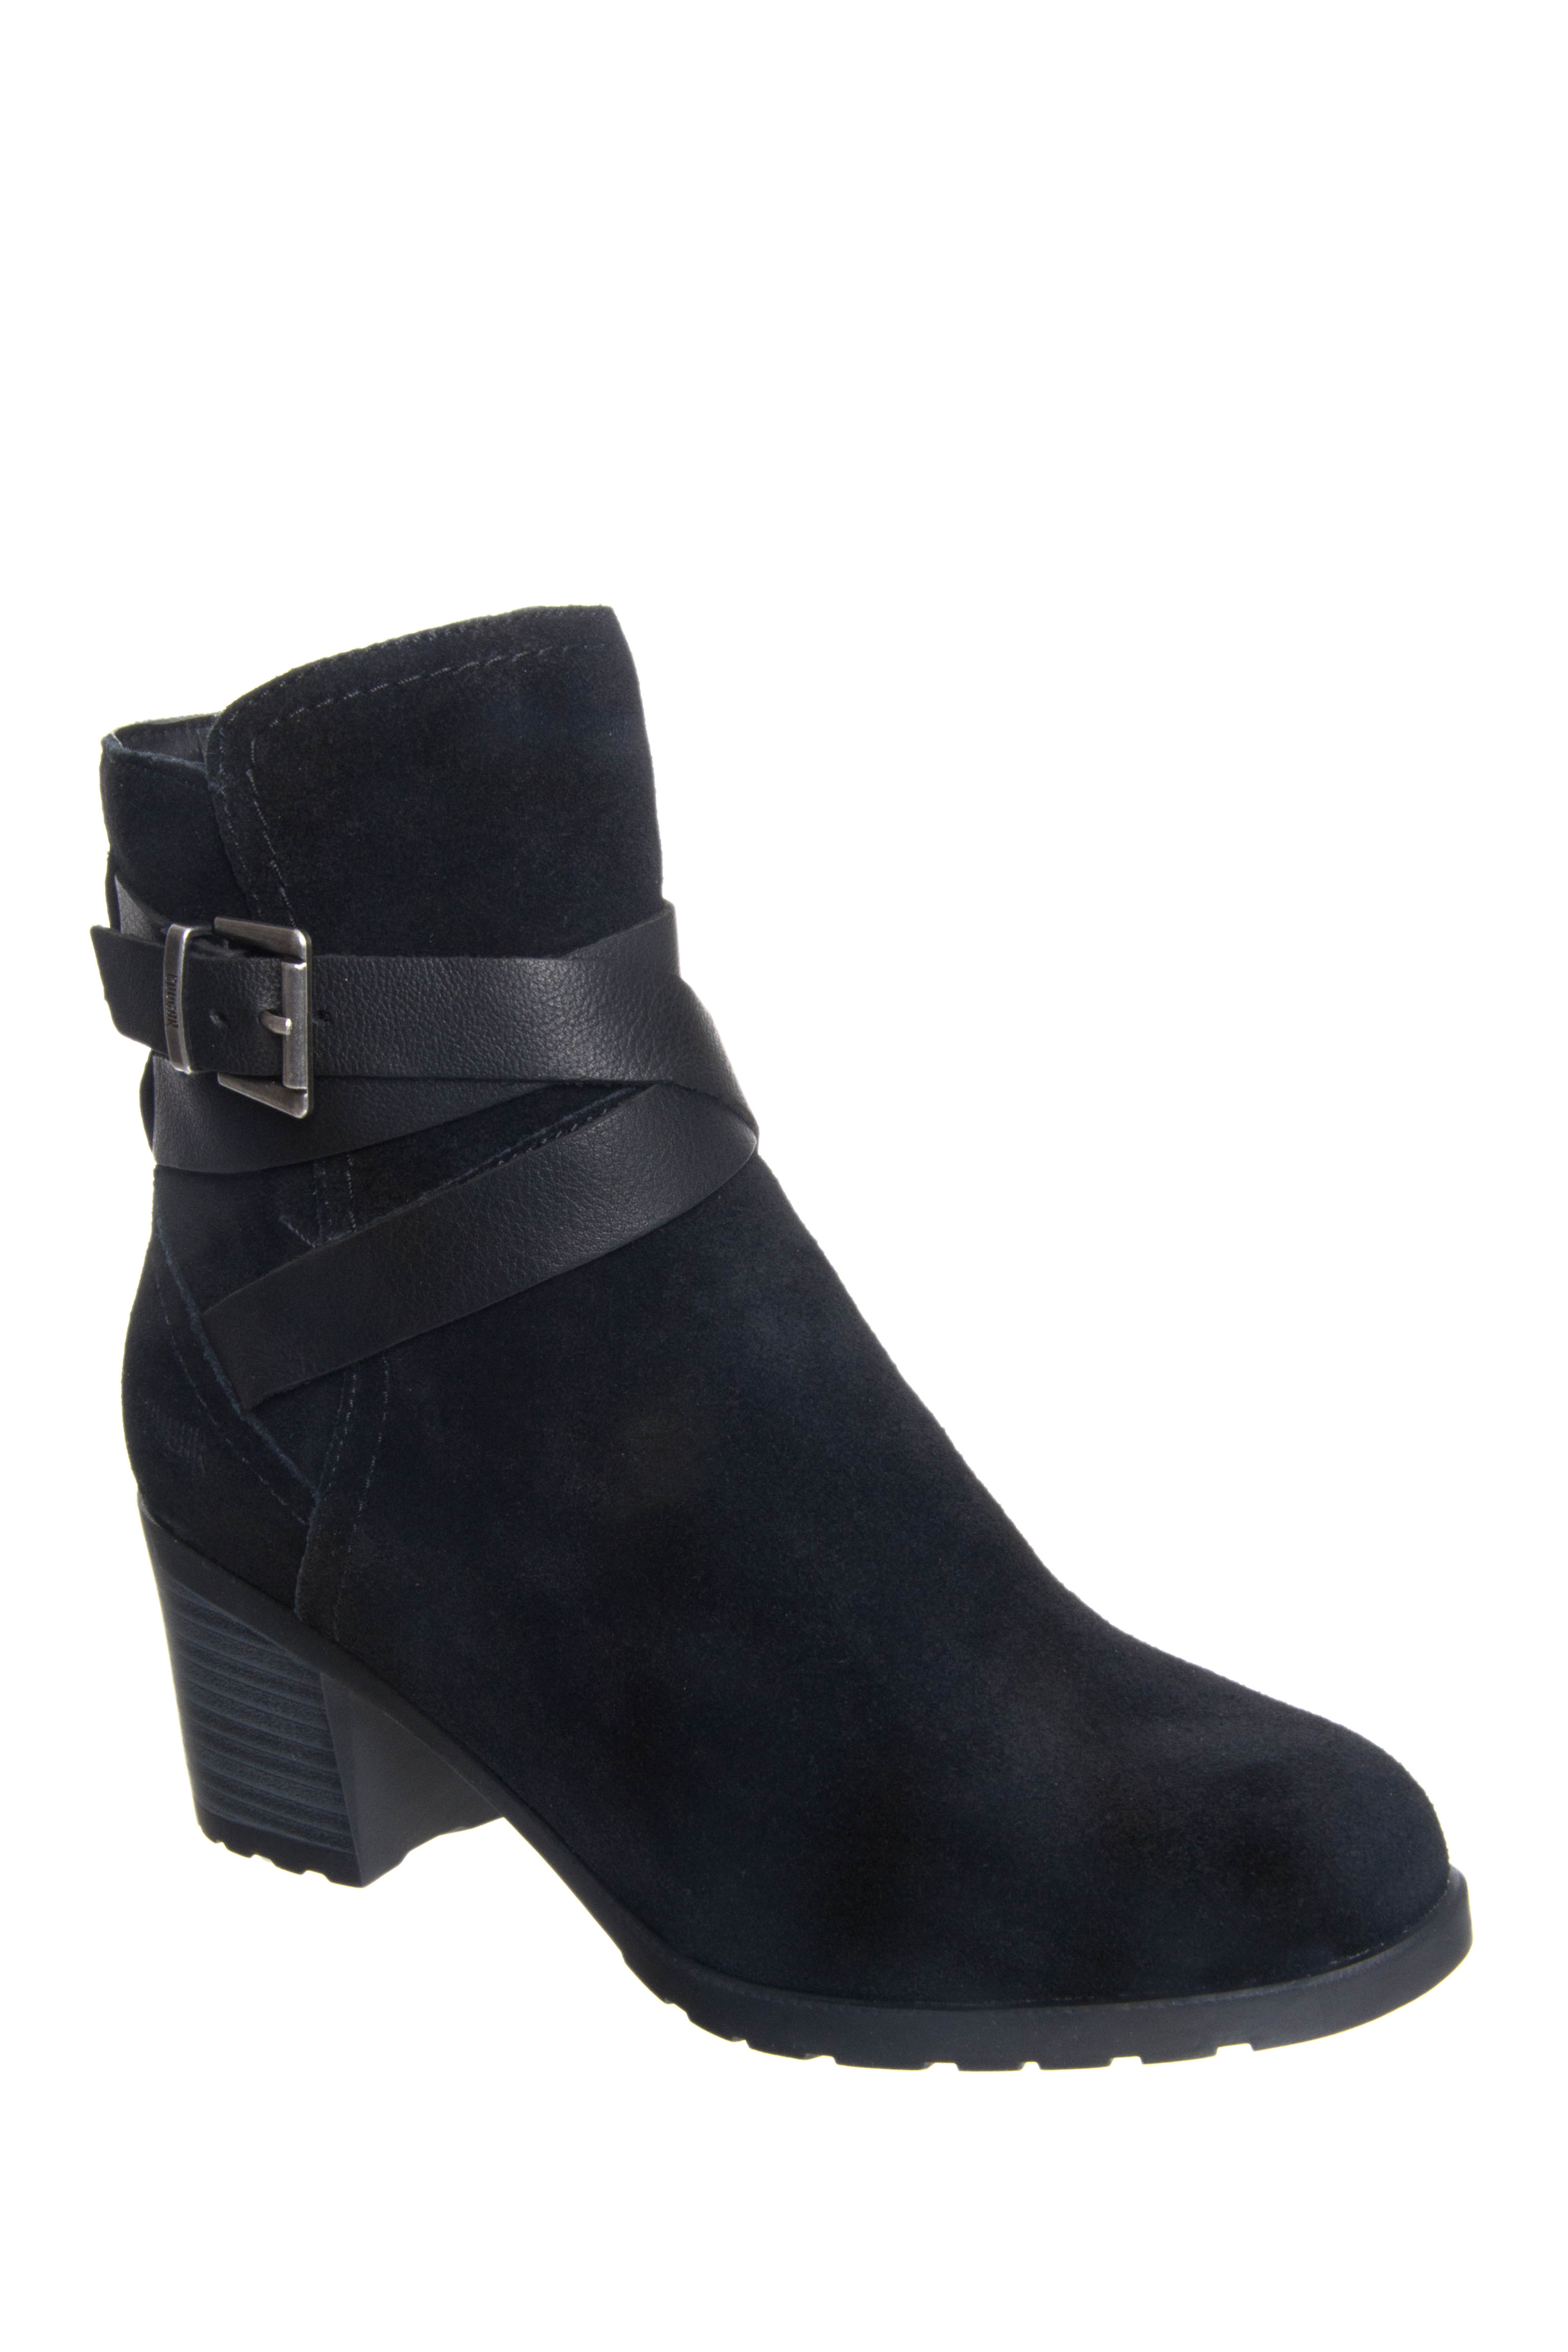 Cougar Arvida Buckle Wrap Zip Booties - Black Suede